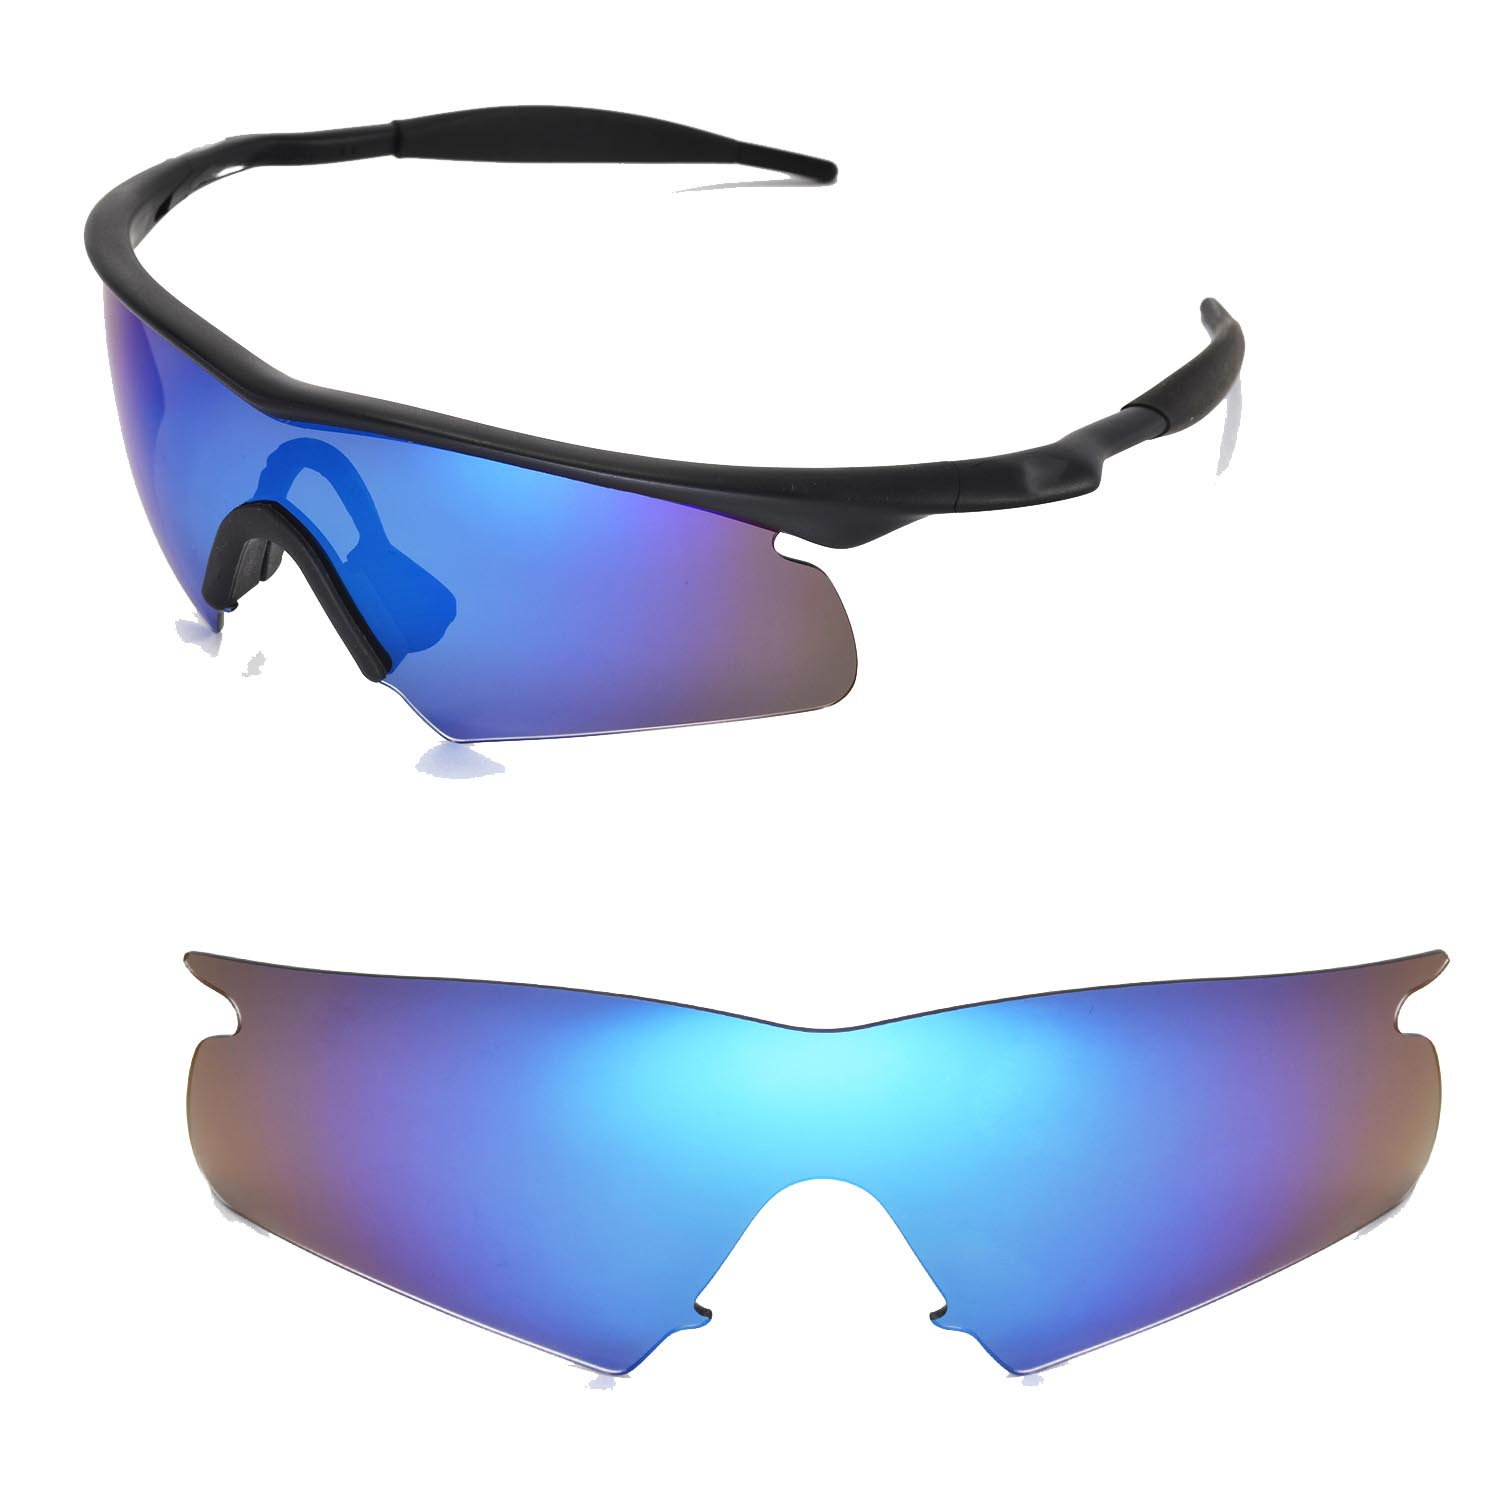 bb682286ad Walleva Replacement Lenses for Oakley M Frame Hybrid Sunglasses ...